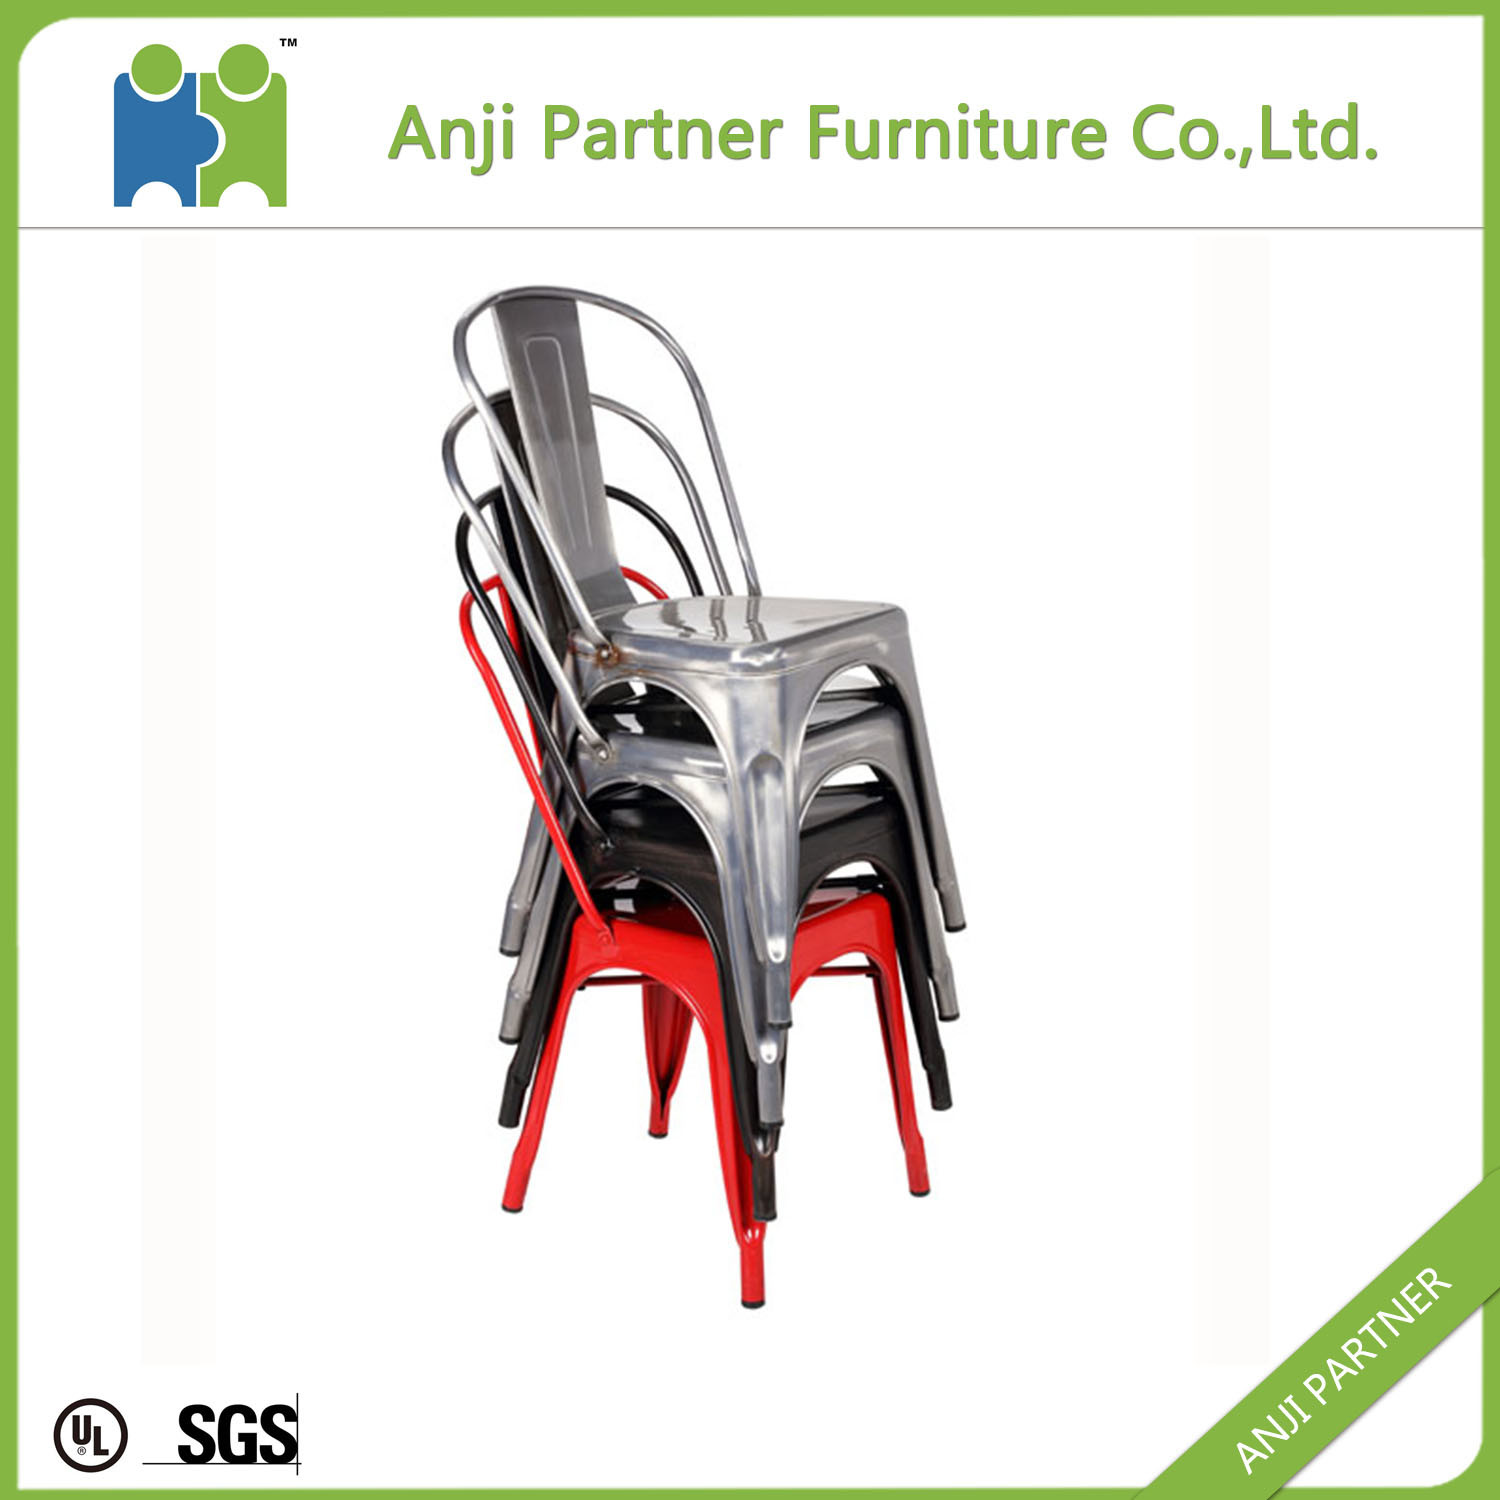 China Wholesale Modern Furniture Vintage Industrial Metal Chair (Hagupit)